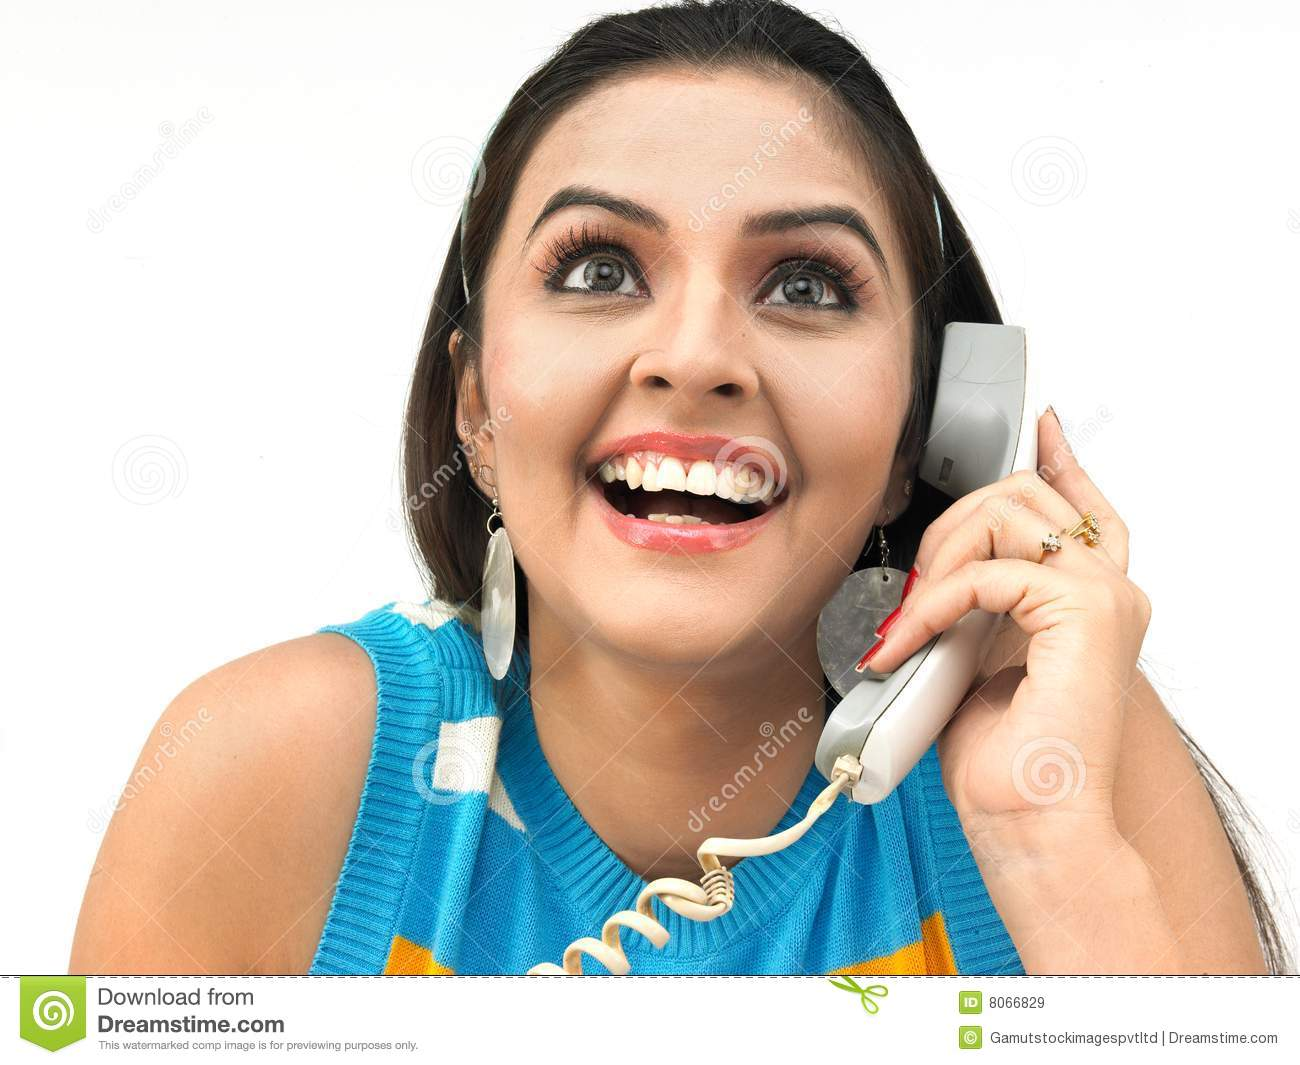 Women on the phone pictures